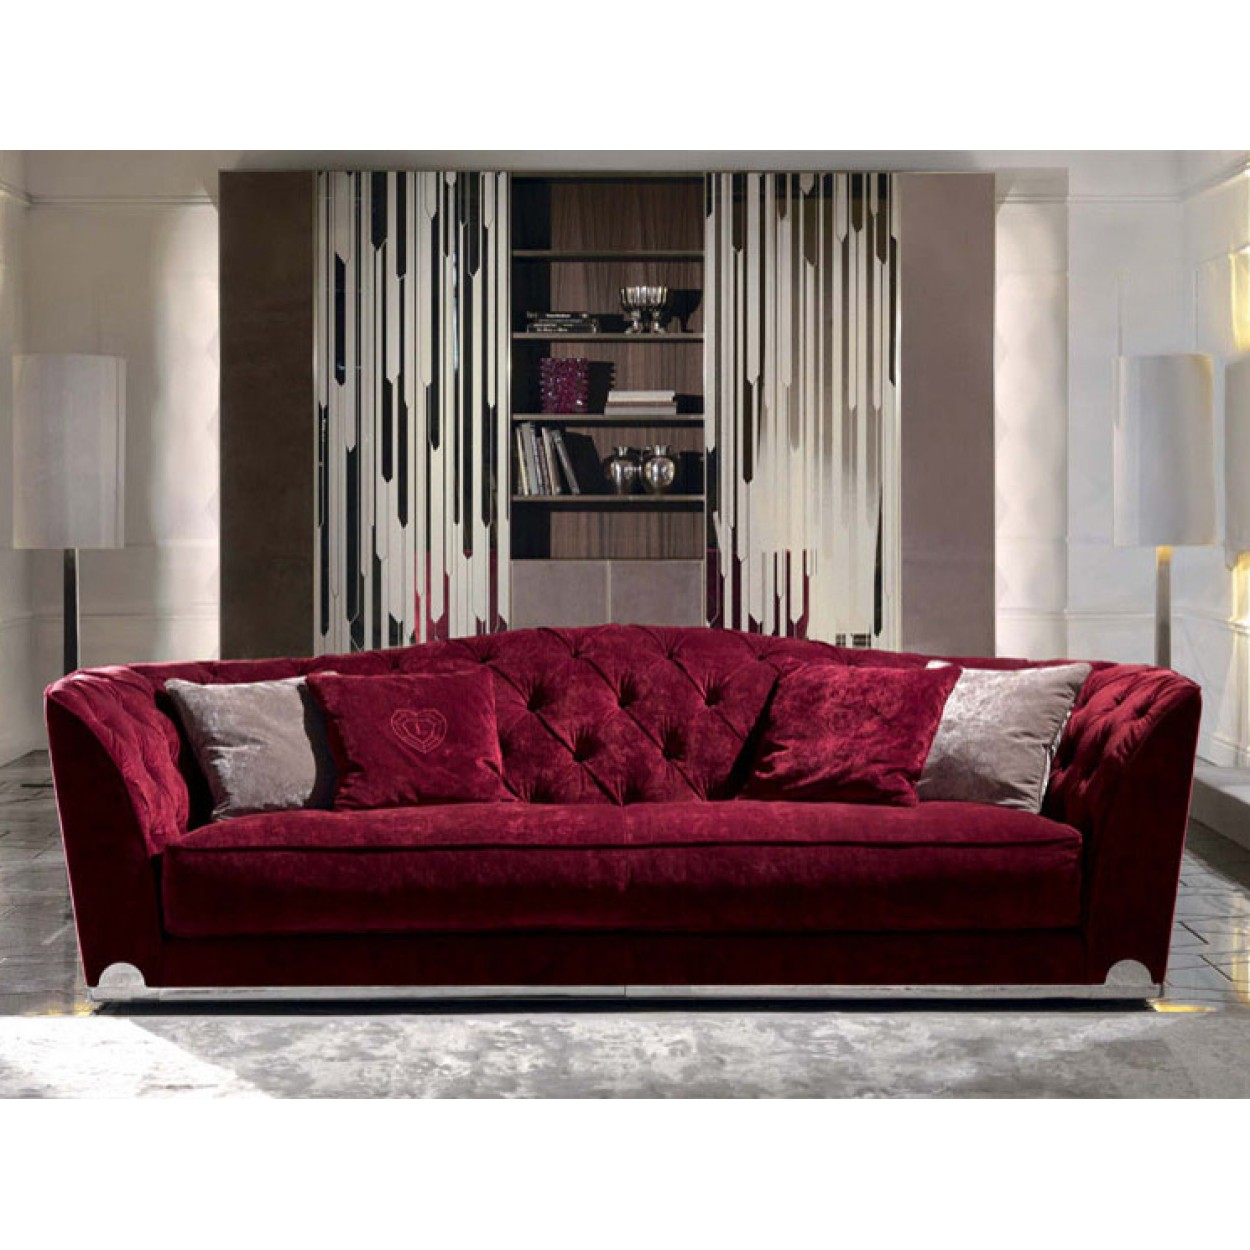 CUSTOM SIZE GRACE SOFA